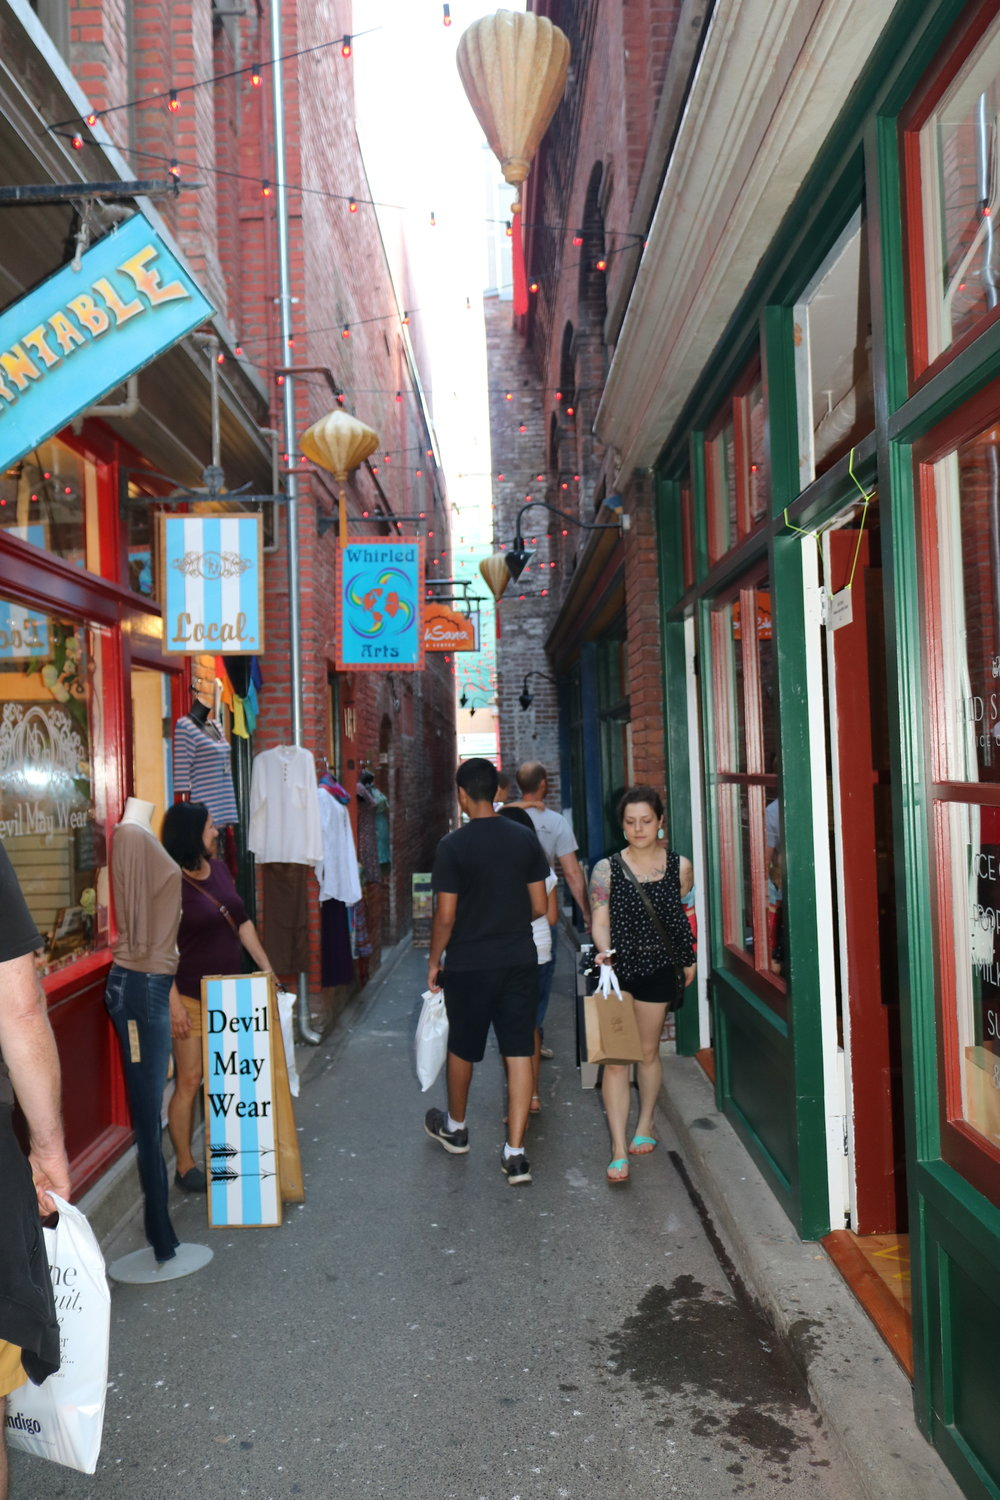 Once a place of ill-repute, Fan Tan Alley is now a tourist hotspot with many shops.